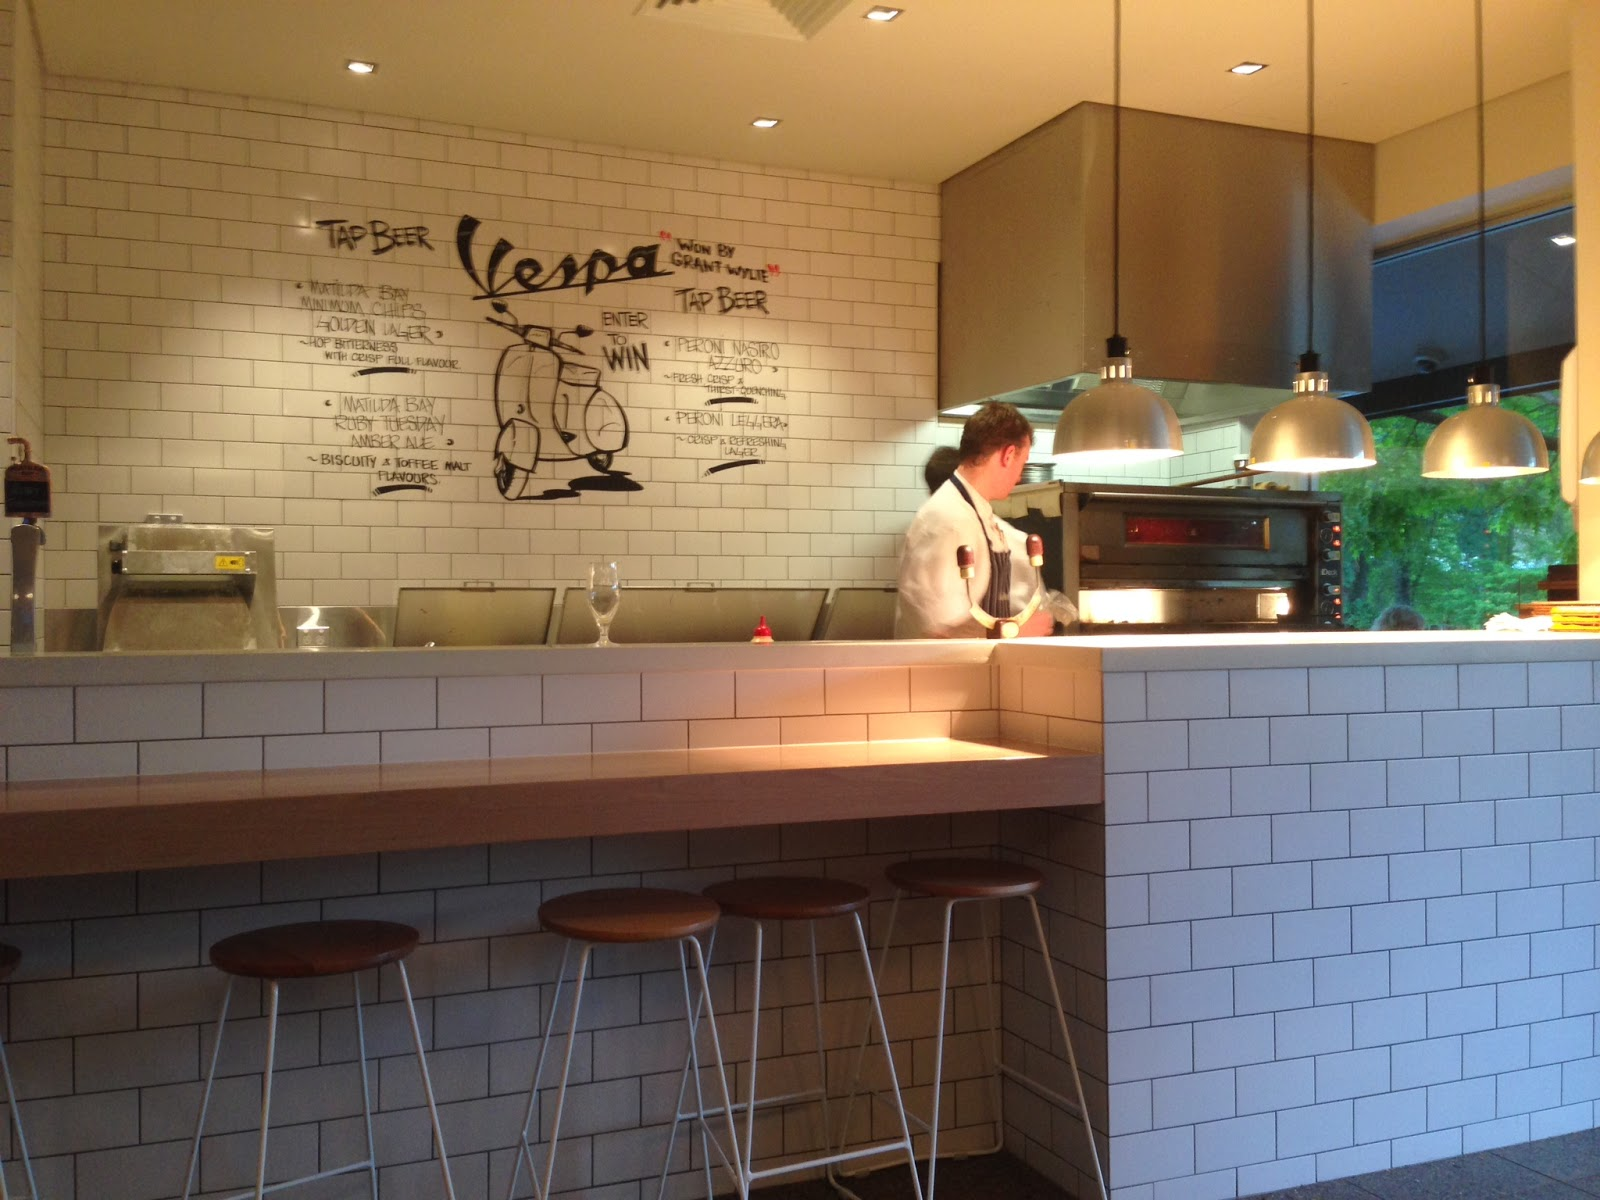 Pizza Kitchen, The Stirling Hotel - Adelaide Hills